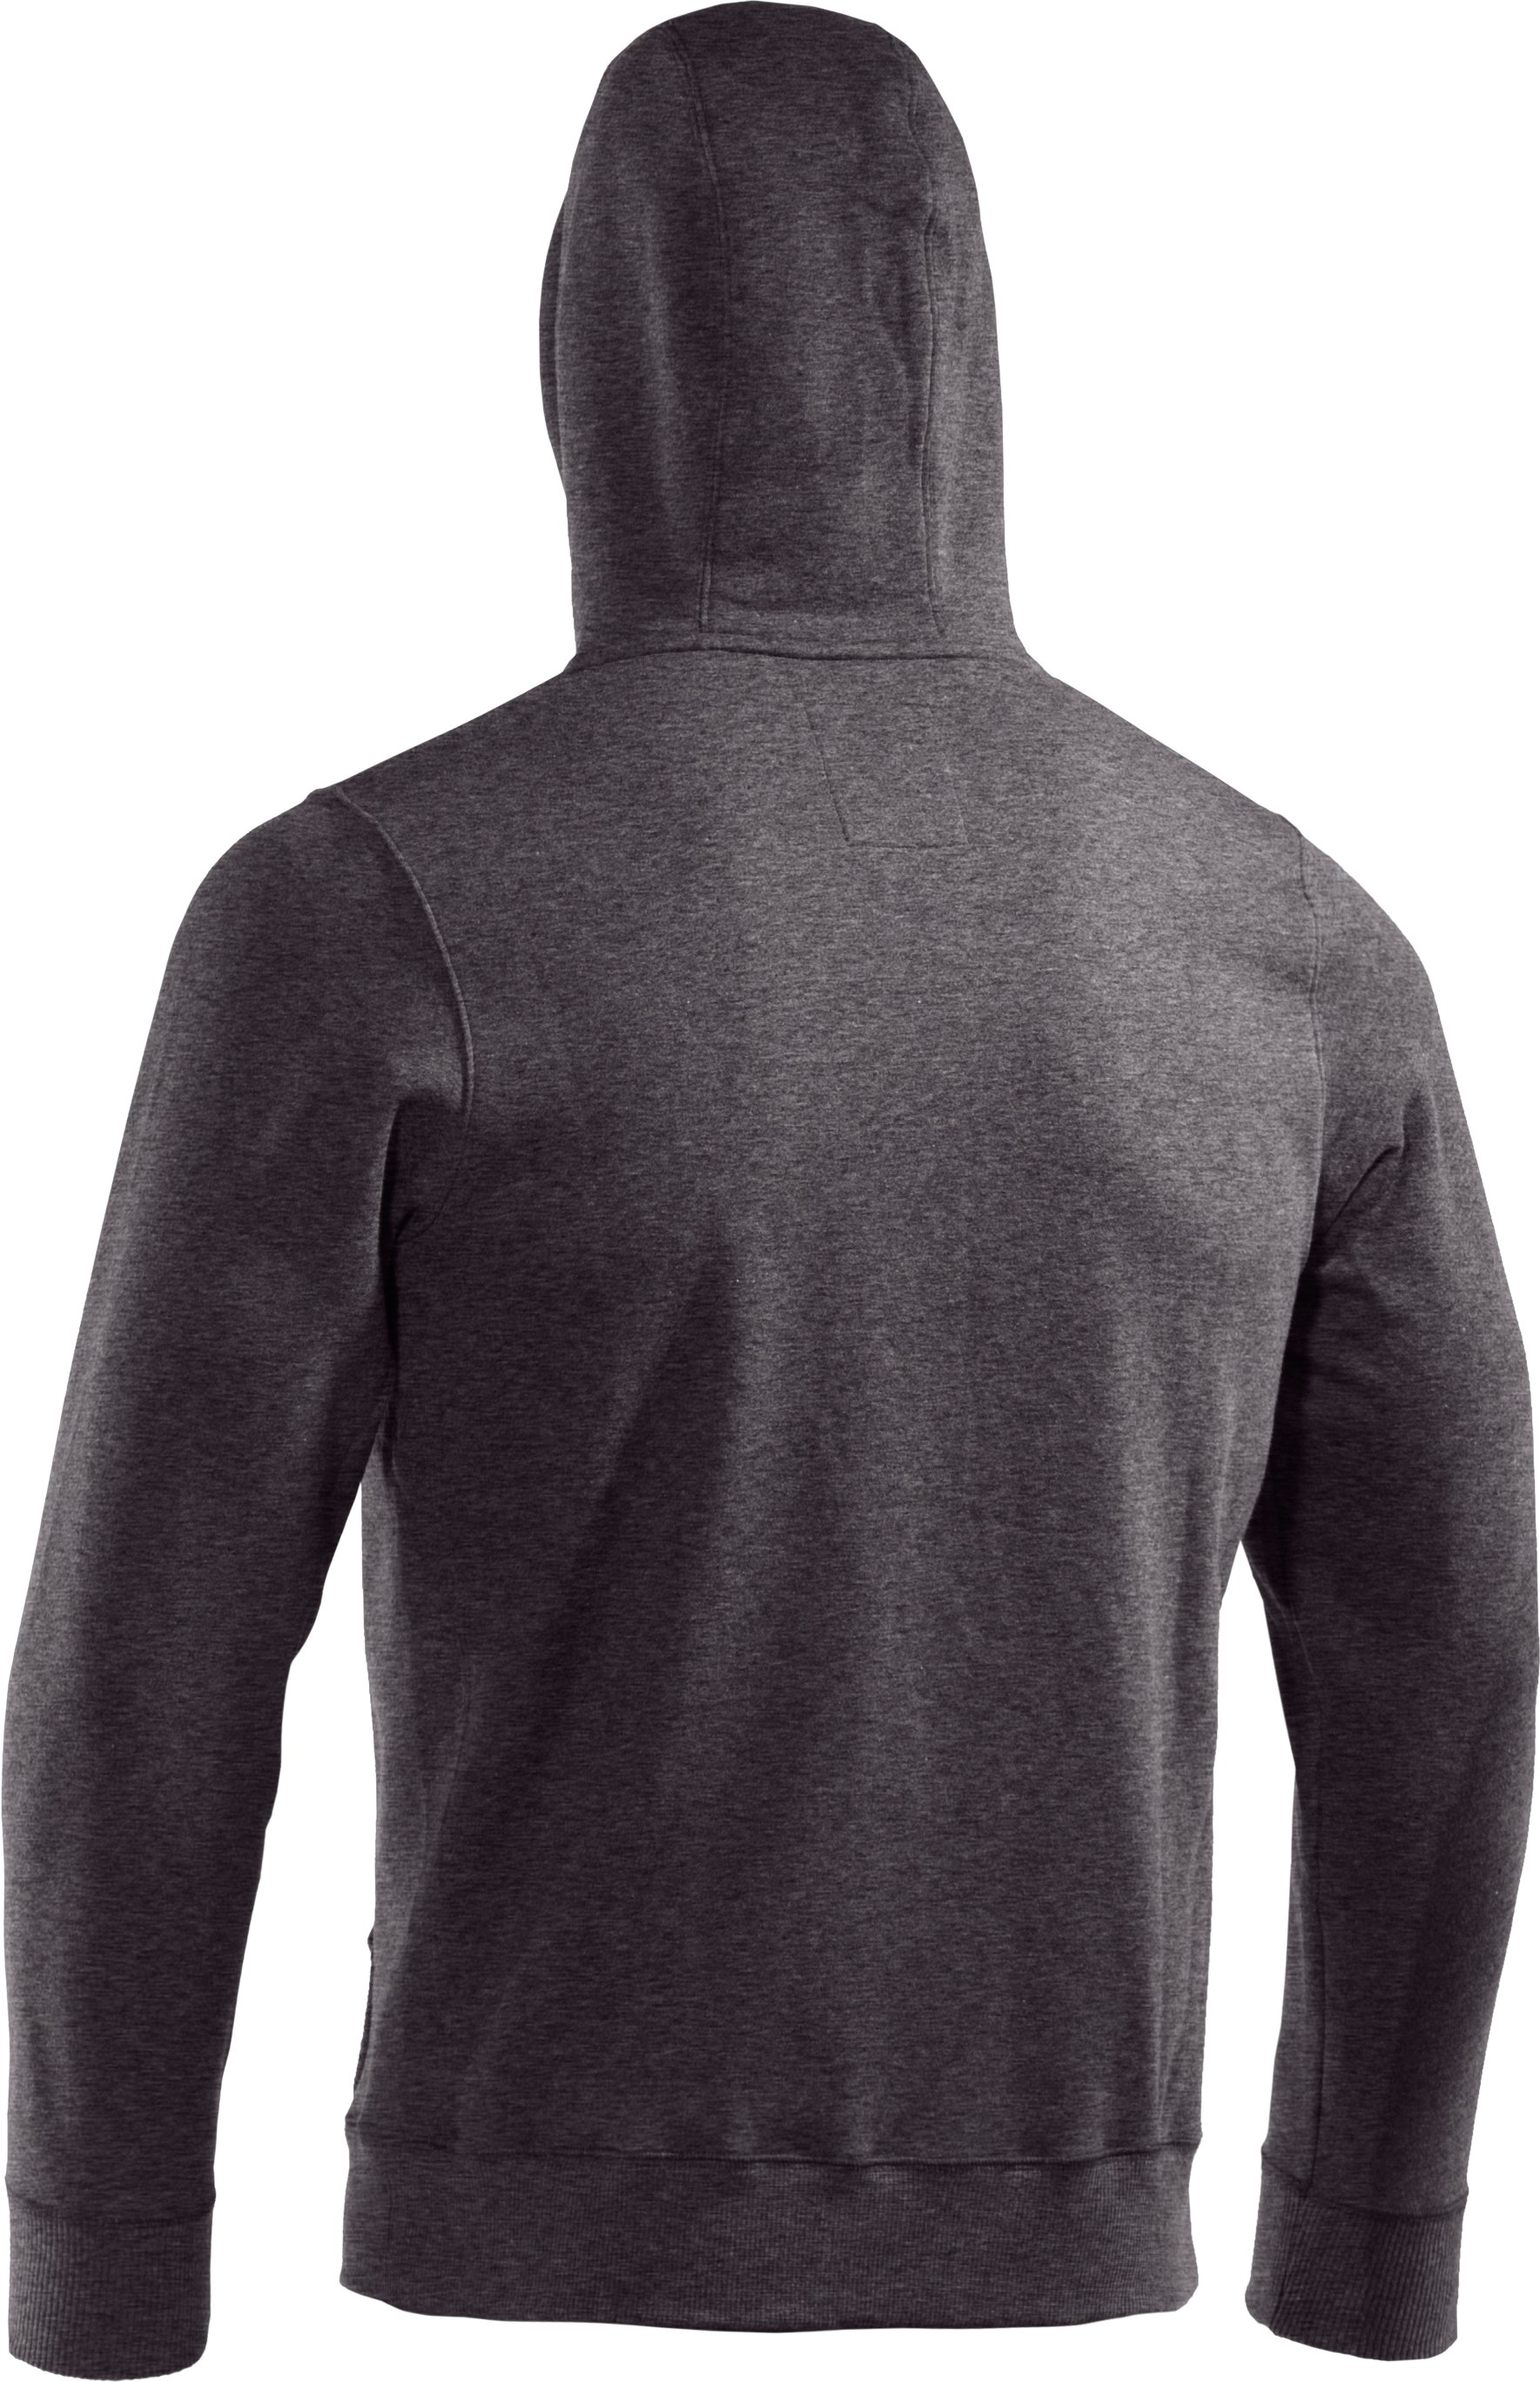 Men's Charged Cotton® Storm Full Zip Hoodie, Carbon Heather